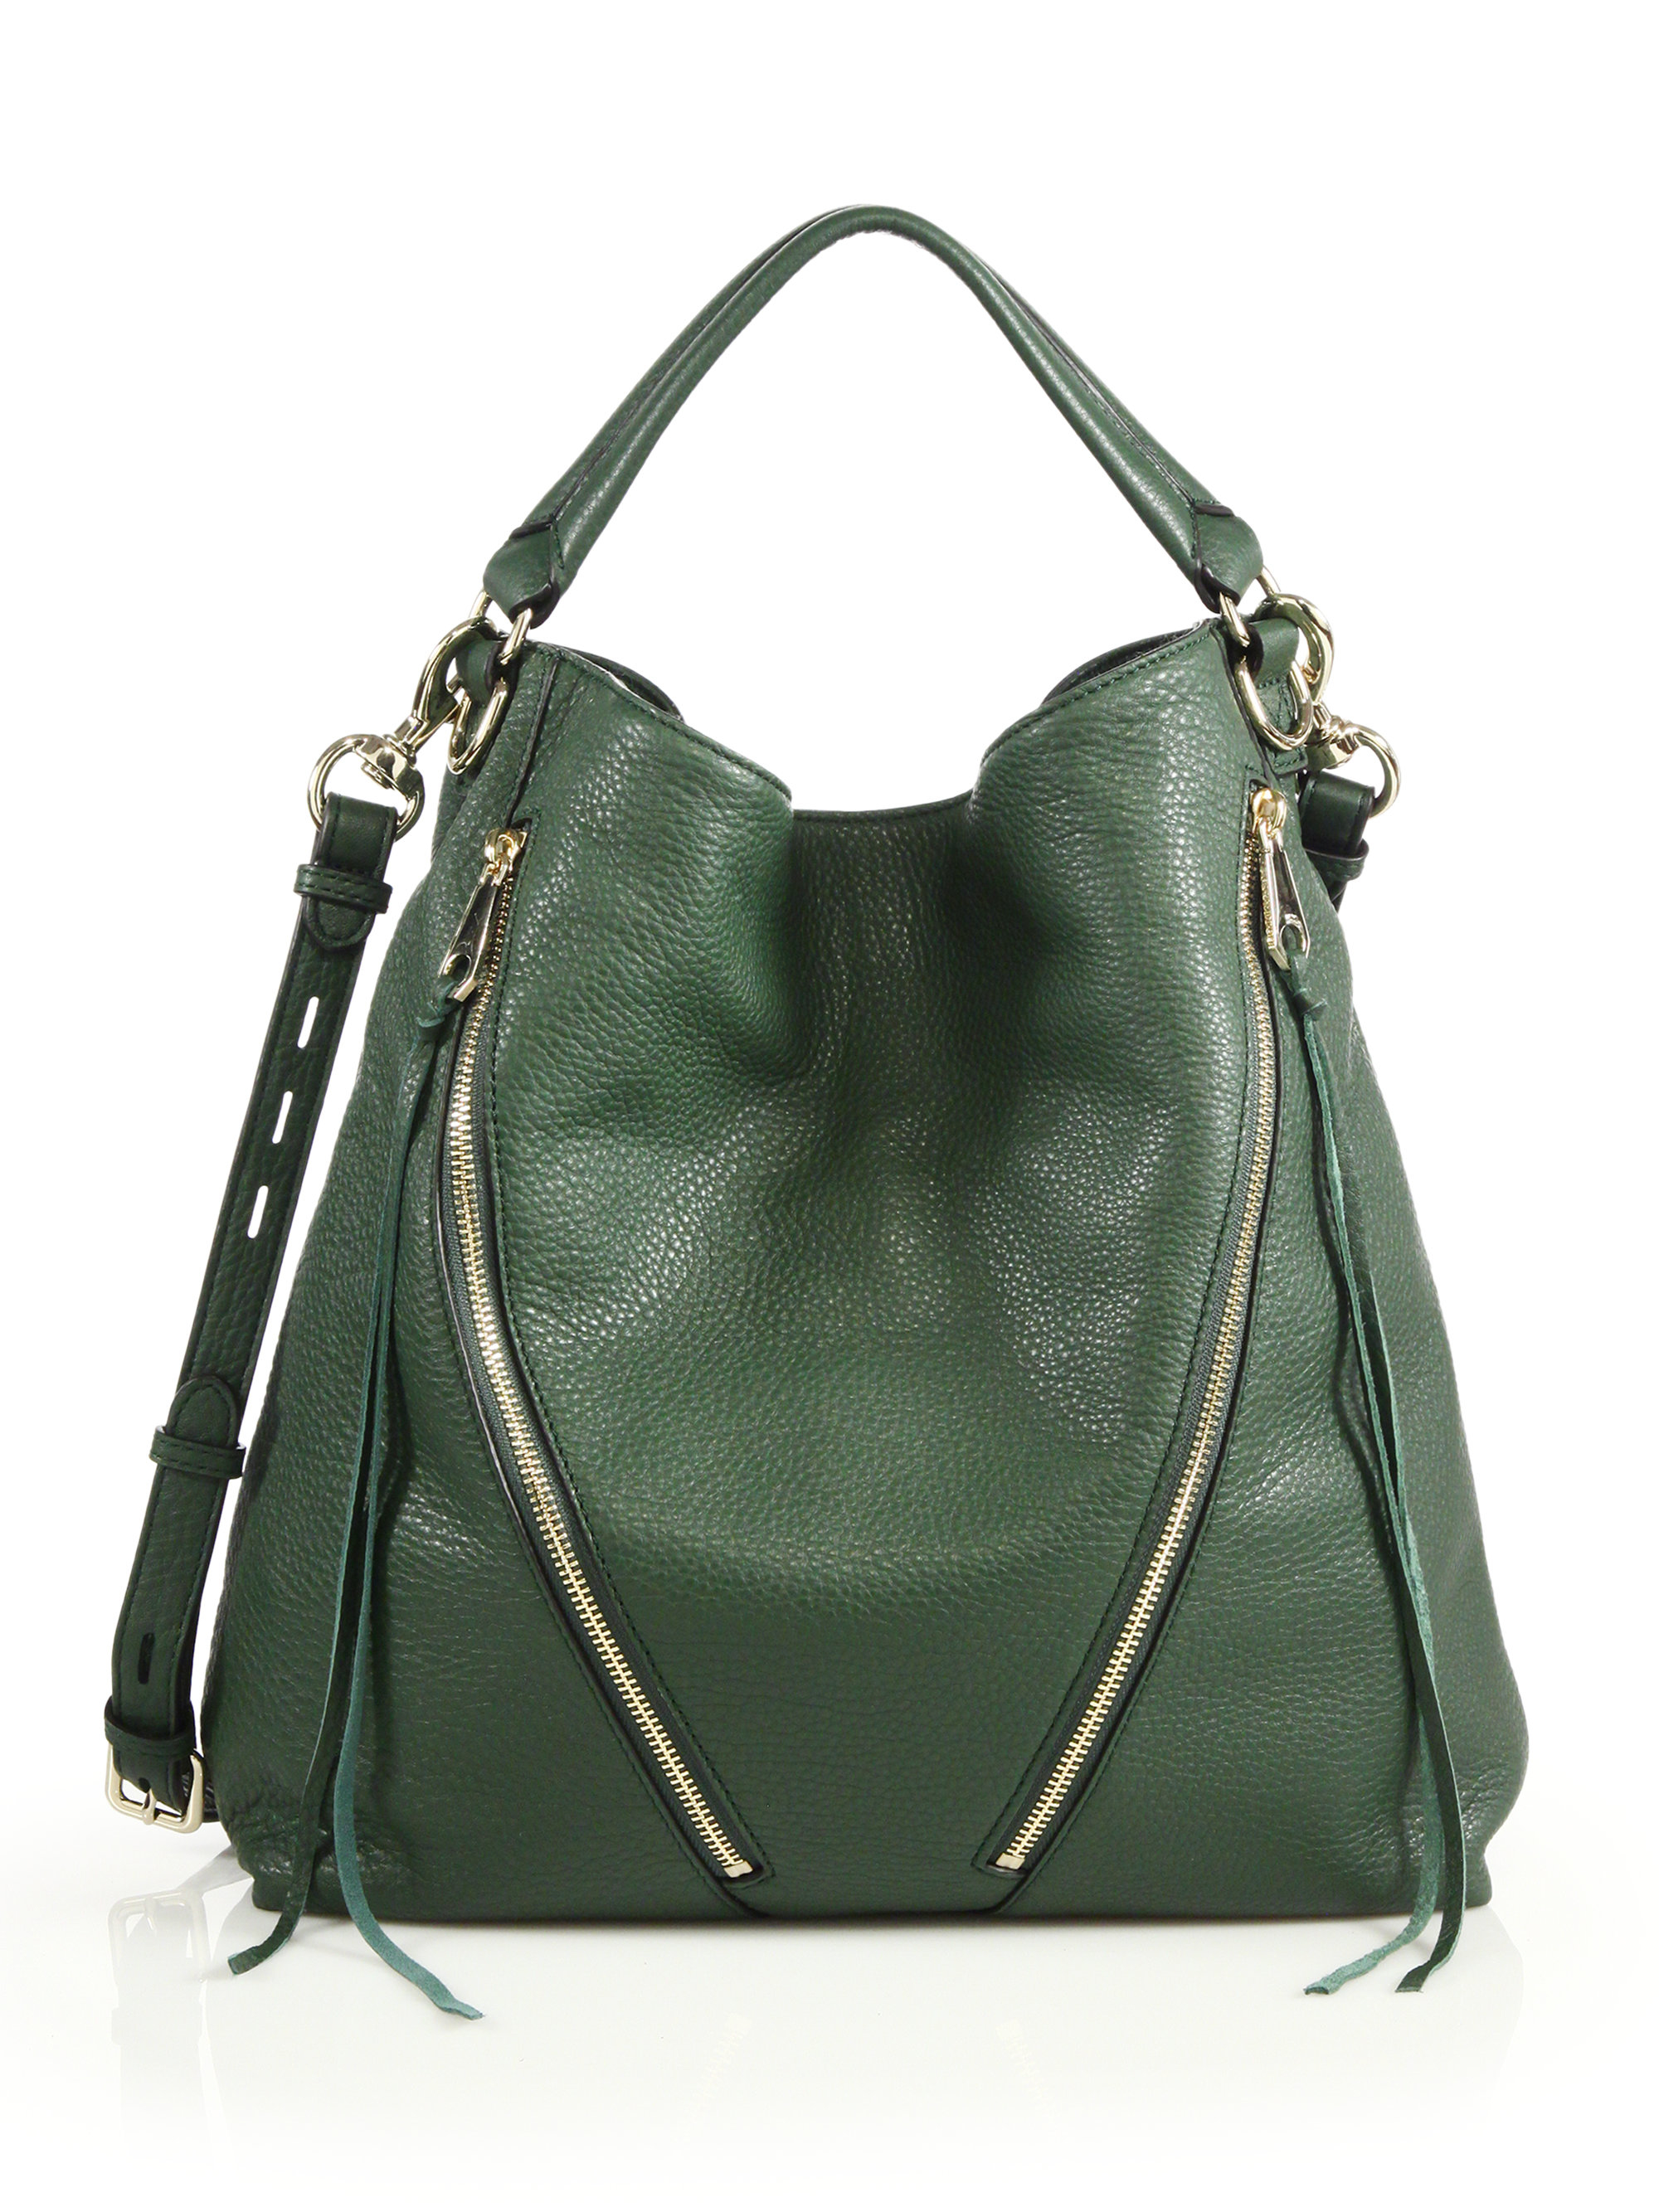 Rebecca minkoff Moto Leather Hobo Bag in Green | Lyst